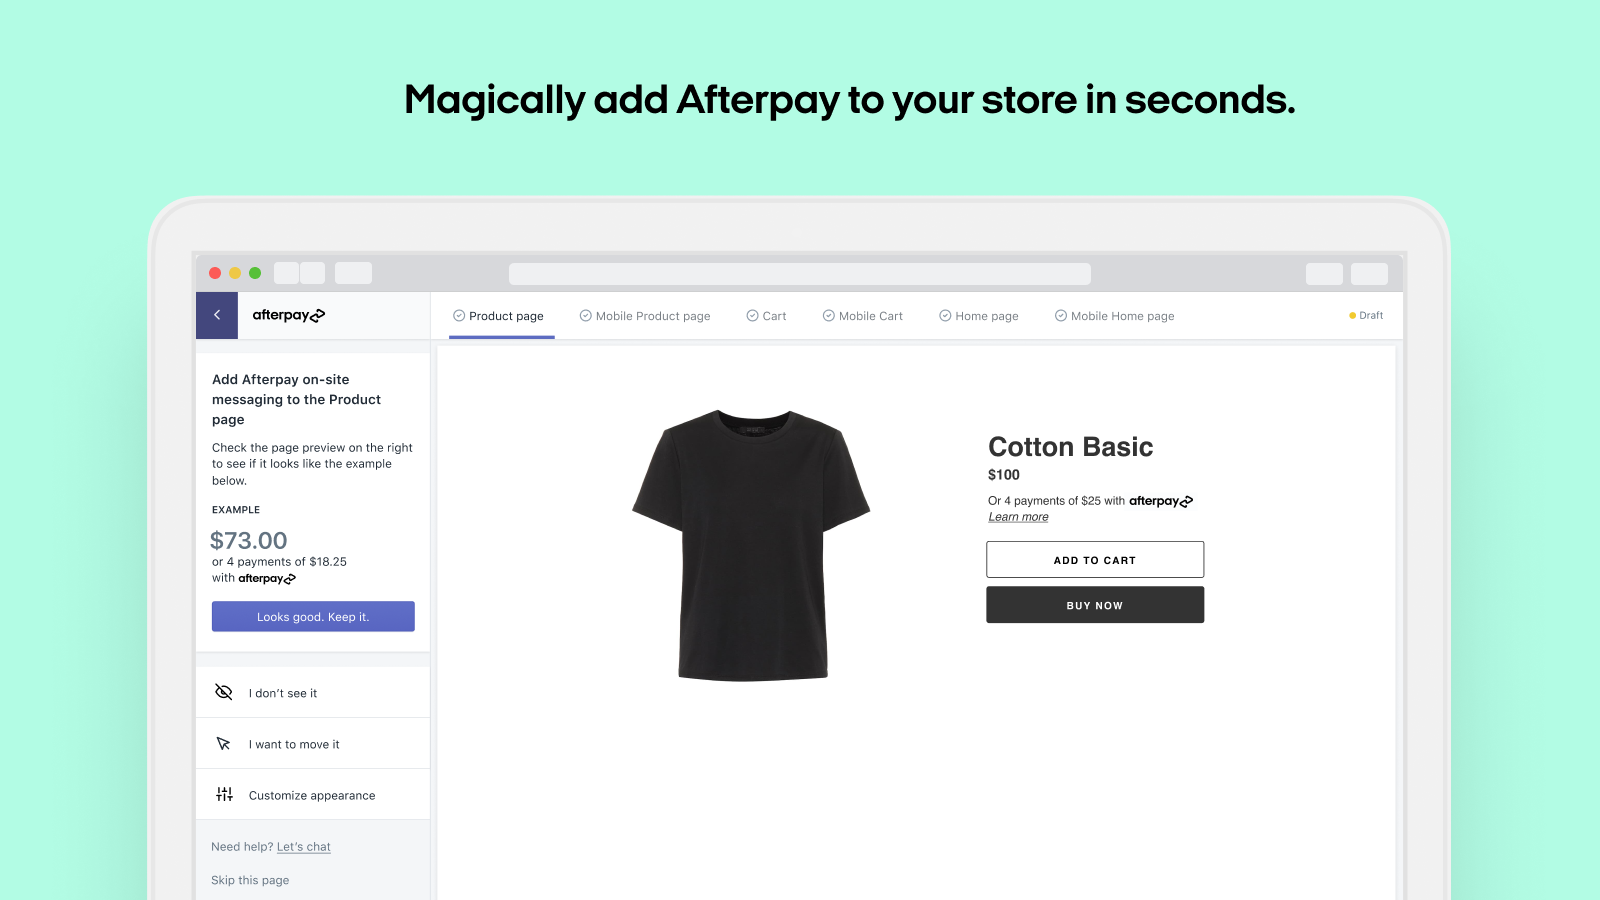 Magically add Afterpay to your store in seconds.